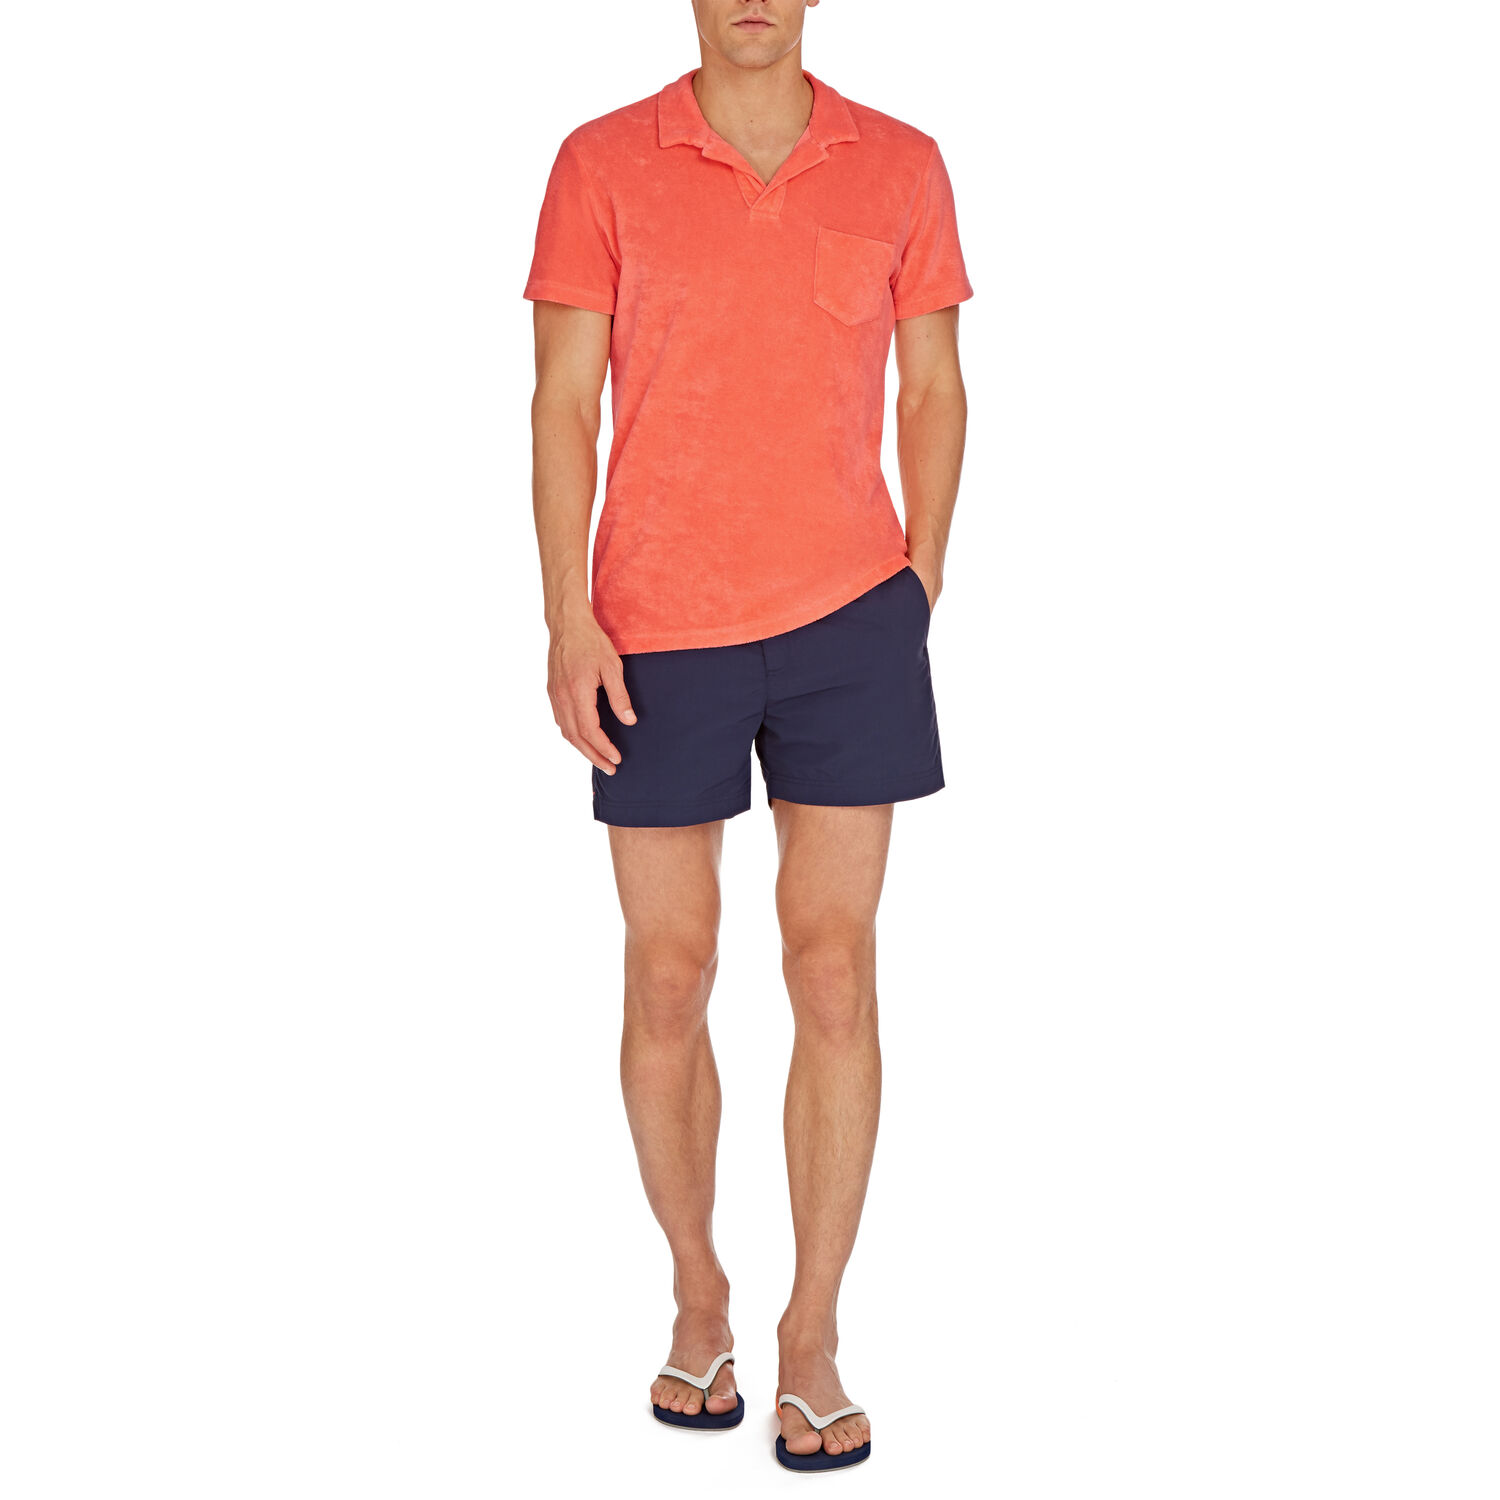 Orlebar Brown Terry Towelling HOT CORAL